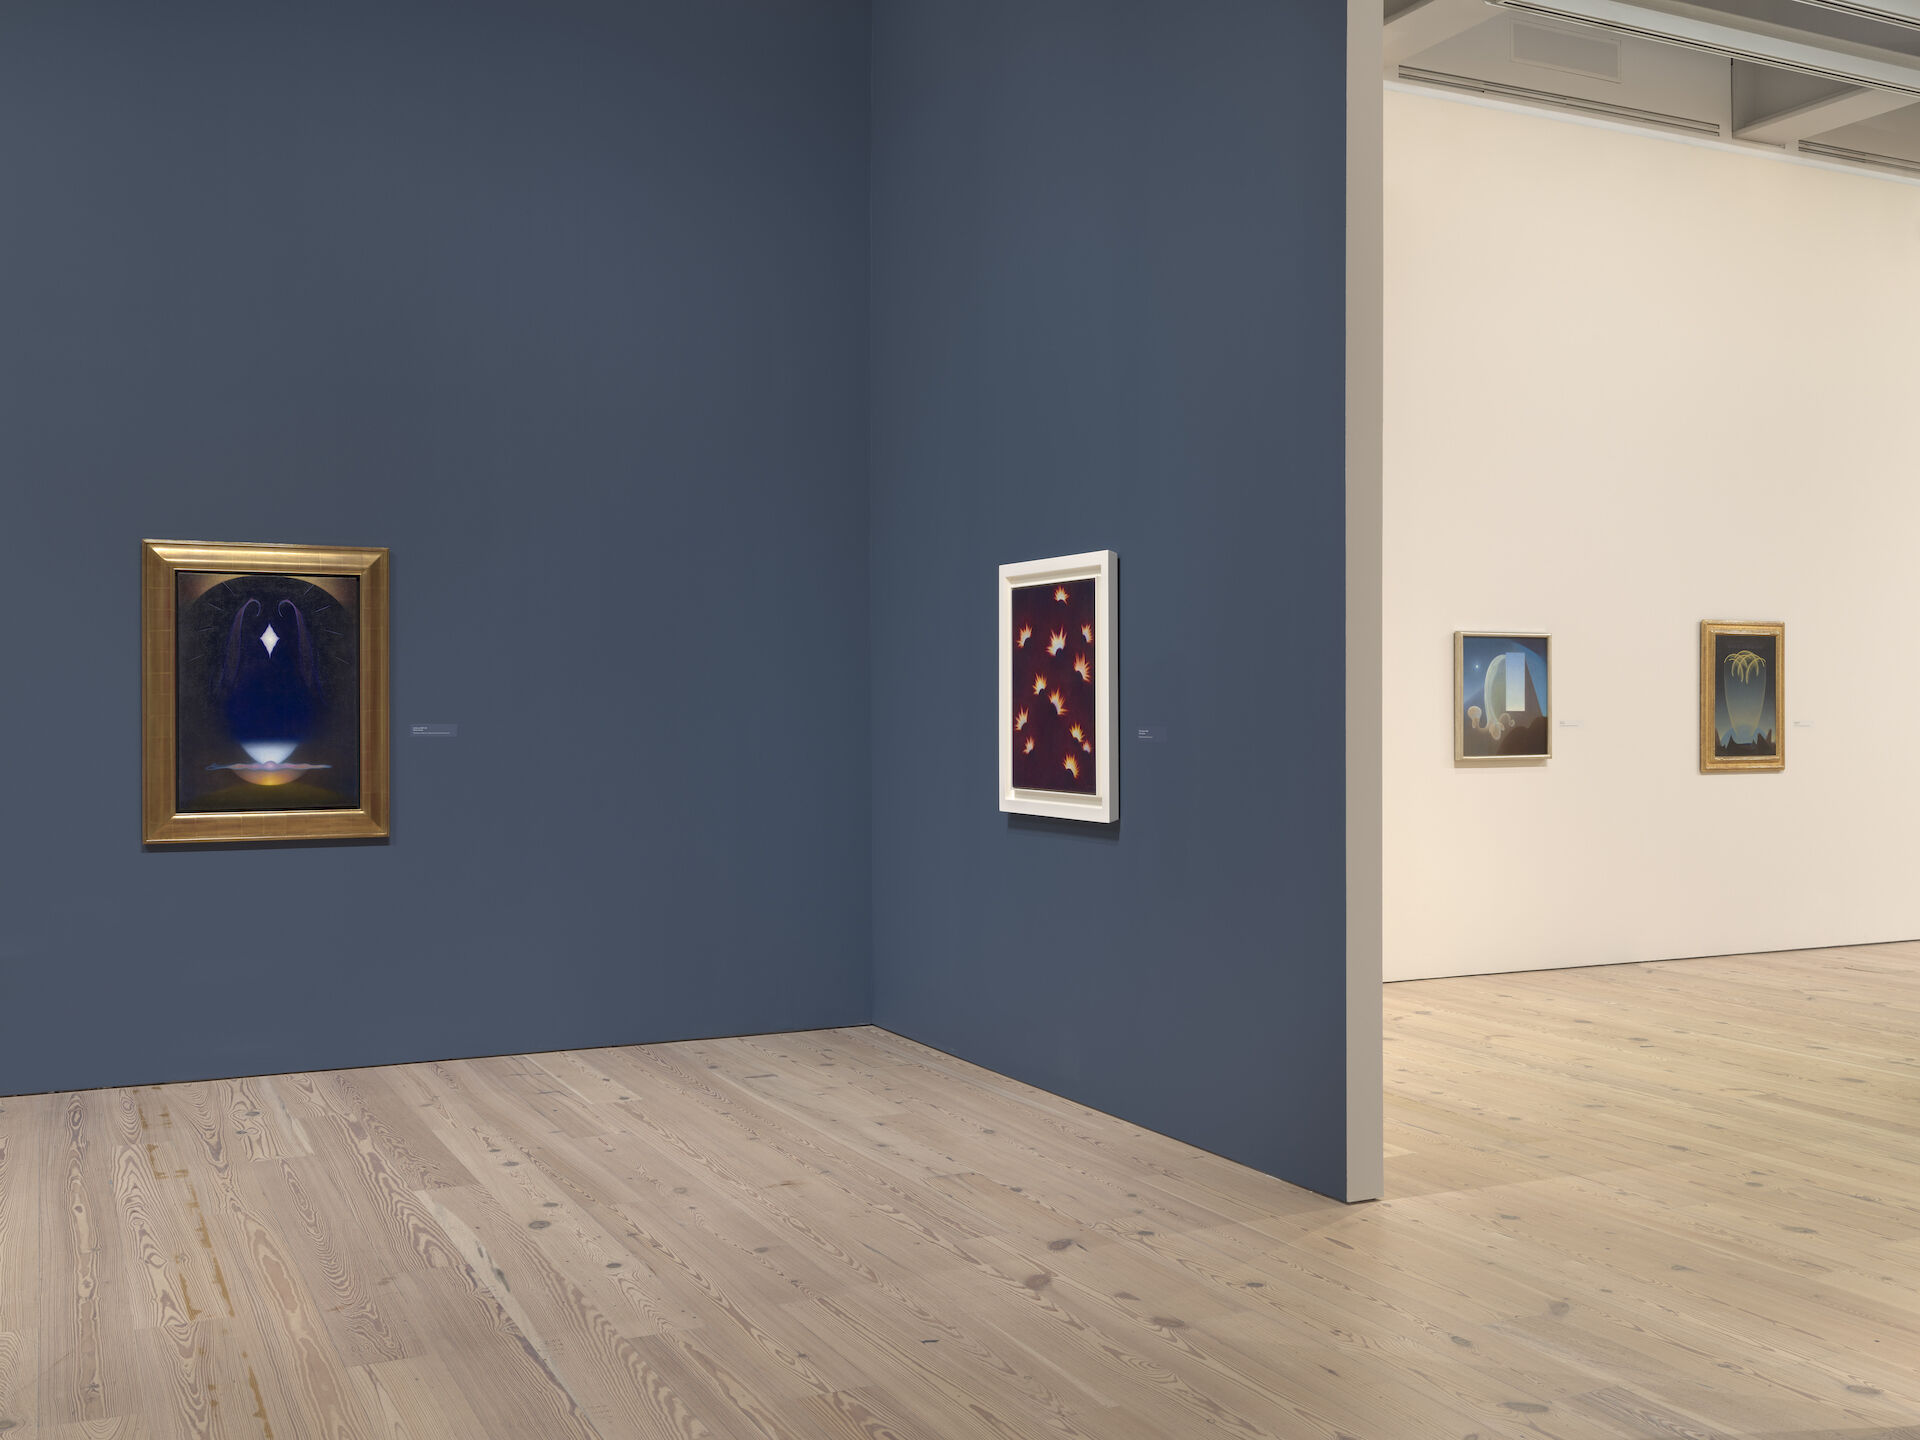 In a blue room at the Whitney, two paintings appear on walls to the right of a white room containing two other paintings. The work is by Agnes Pelton, from left to right: Alchemy, 1937-39; Fires in Space, 1938; Day, 1935; Messengers, 1932.